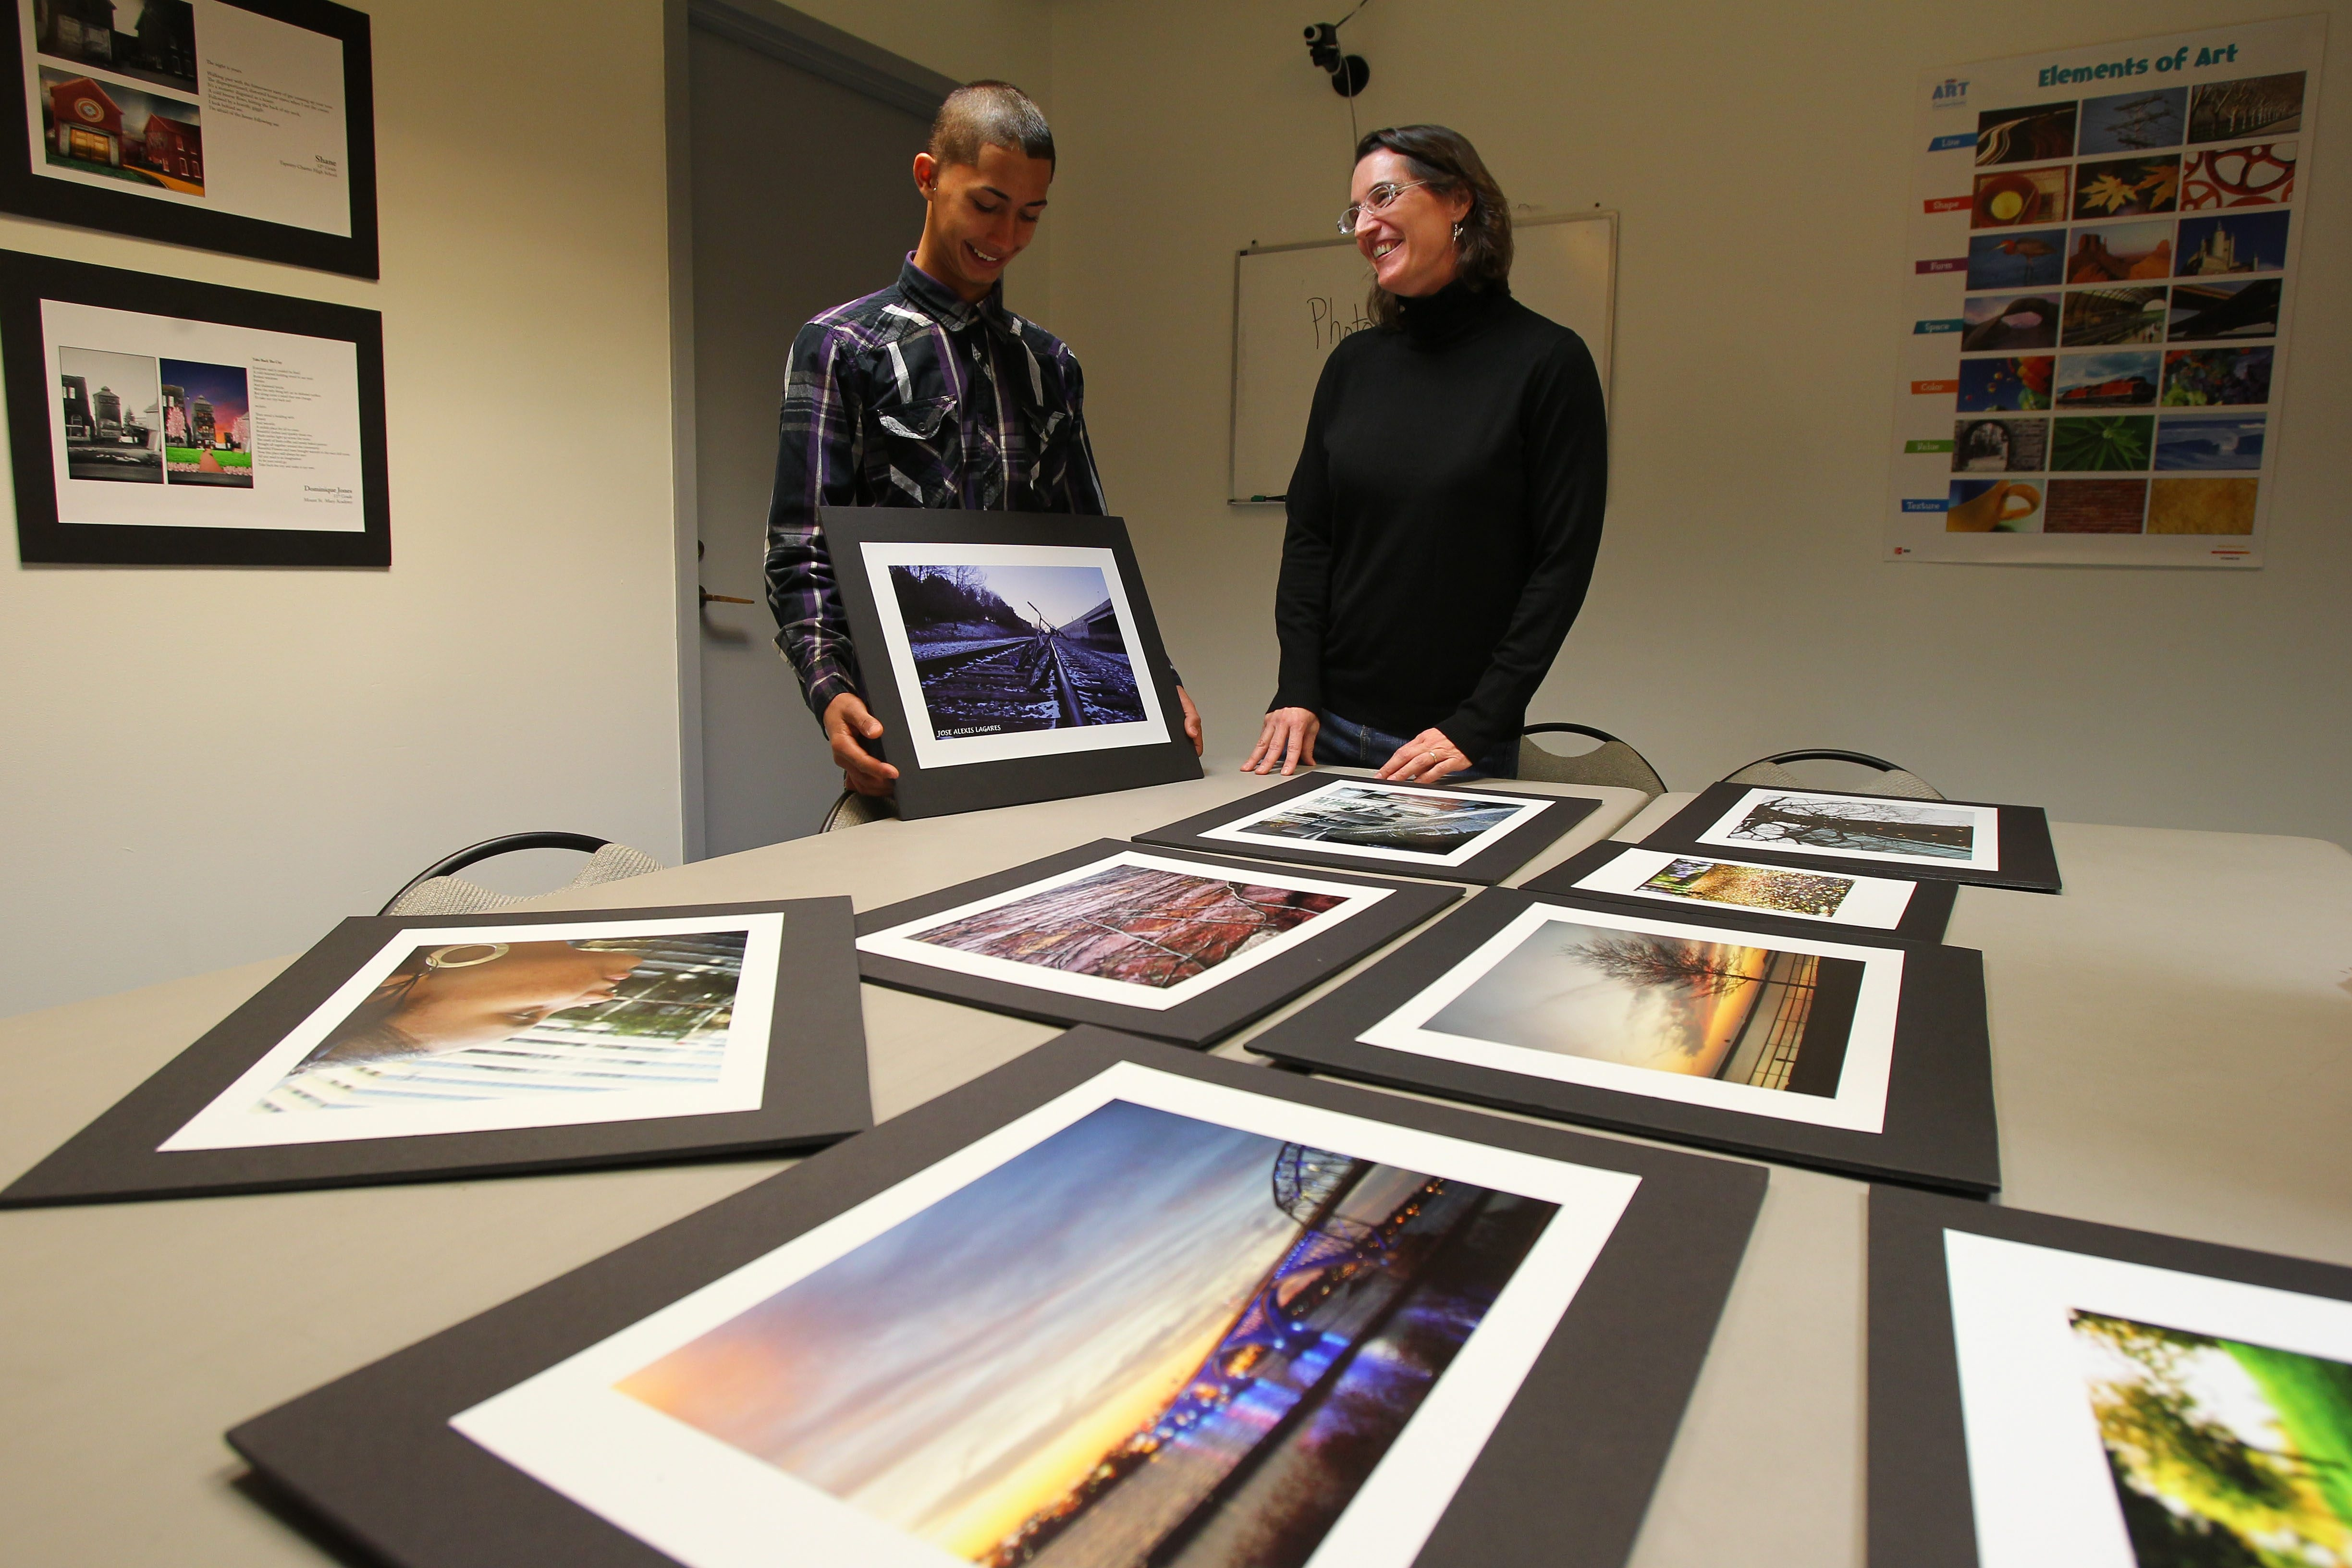 Jose Lagares and CEPA Education Director Lauren Tent look over some of his photographs at the CEPA Gallery in Buffalo on Tuesday. They'll be meeting Michelle Obama at the White House on Friday.